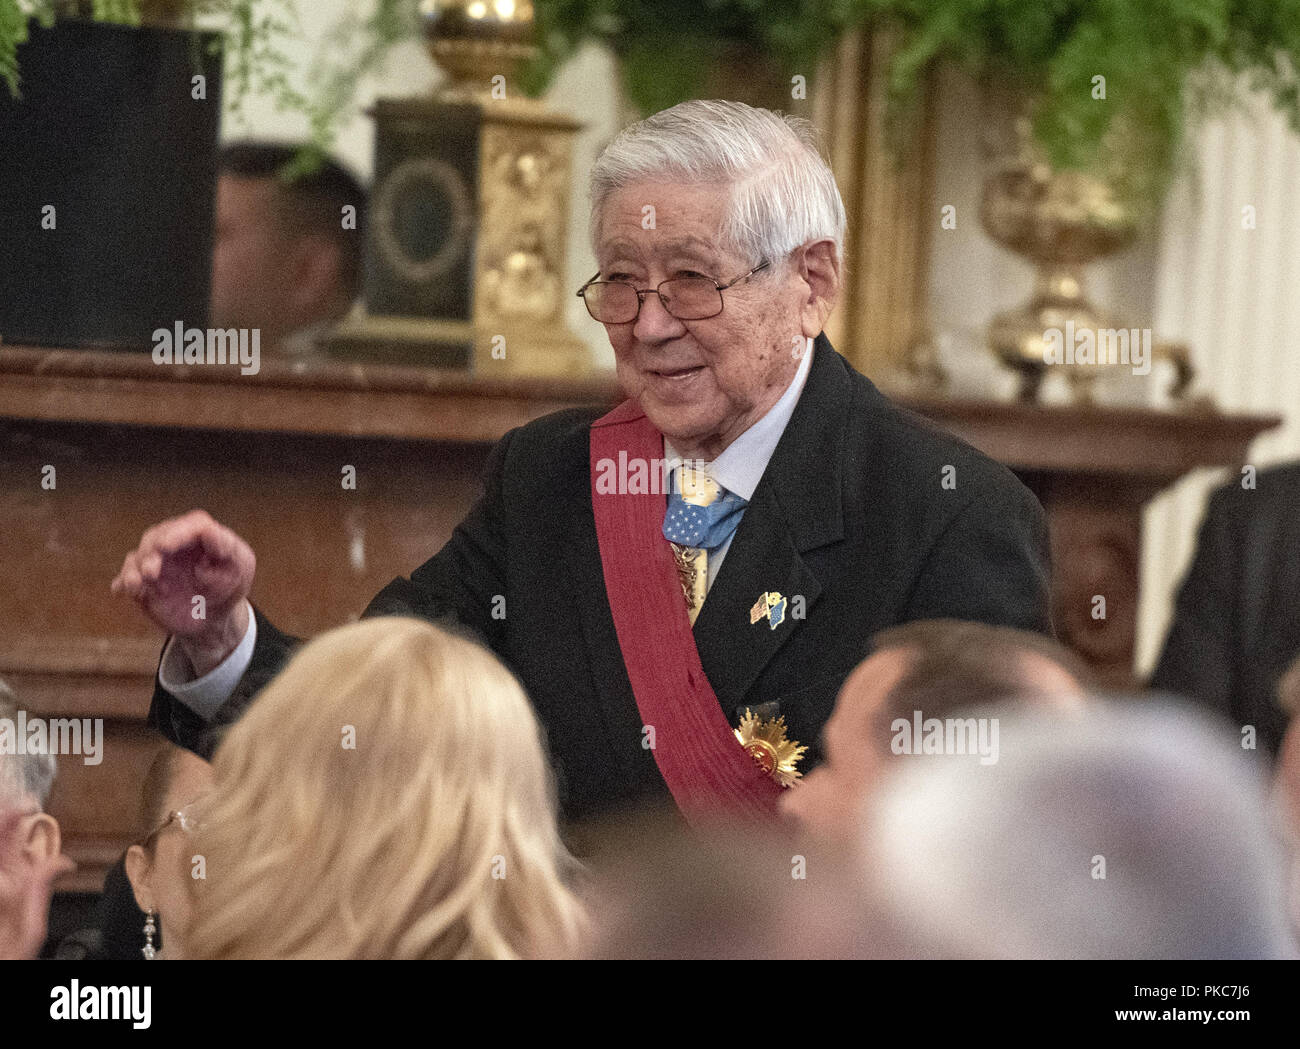 Washington, District of Columbia, USA. 12th Sep, 2018. Then-Staff Sergeant Hiroshi Miyamura, United States Army, a Medal of Honor recipient for bravery in the Korean War, stands after being introduced by US President Donald J. Trump as he makes remarks at the Congressional Medal of Honor Society Reception in the East Room of the White House in Washington, DC on Wednesday, September 12, 2018 Credit: Ron Sachs/CNP/ZUMA Wire/Alamy Live News - Stock Image